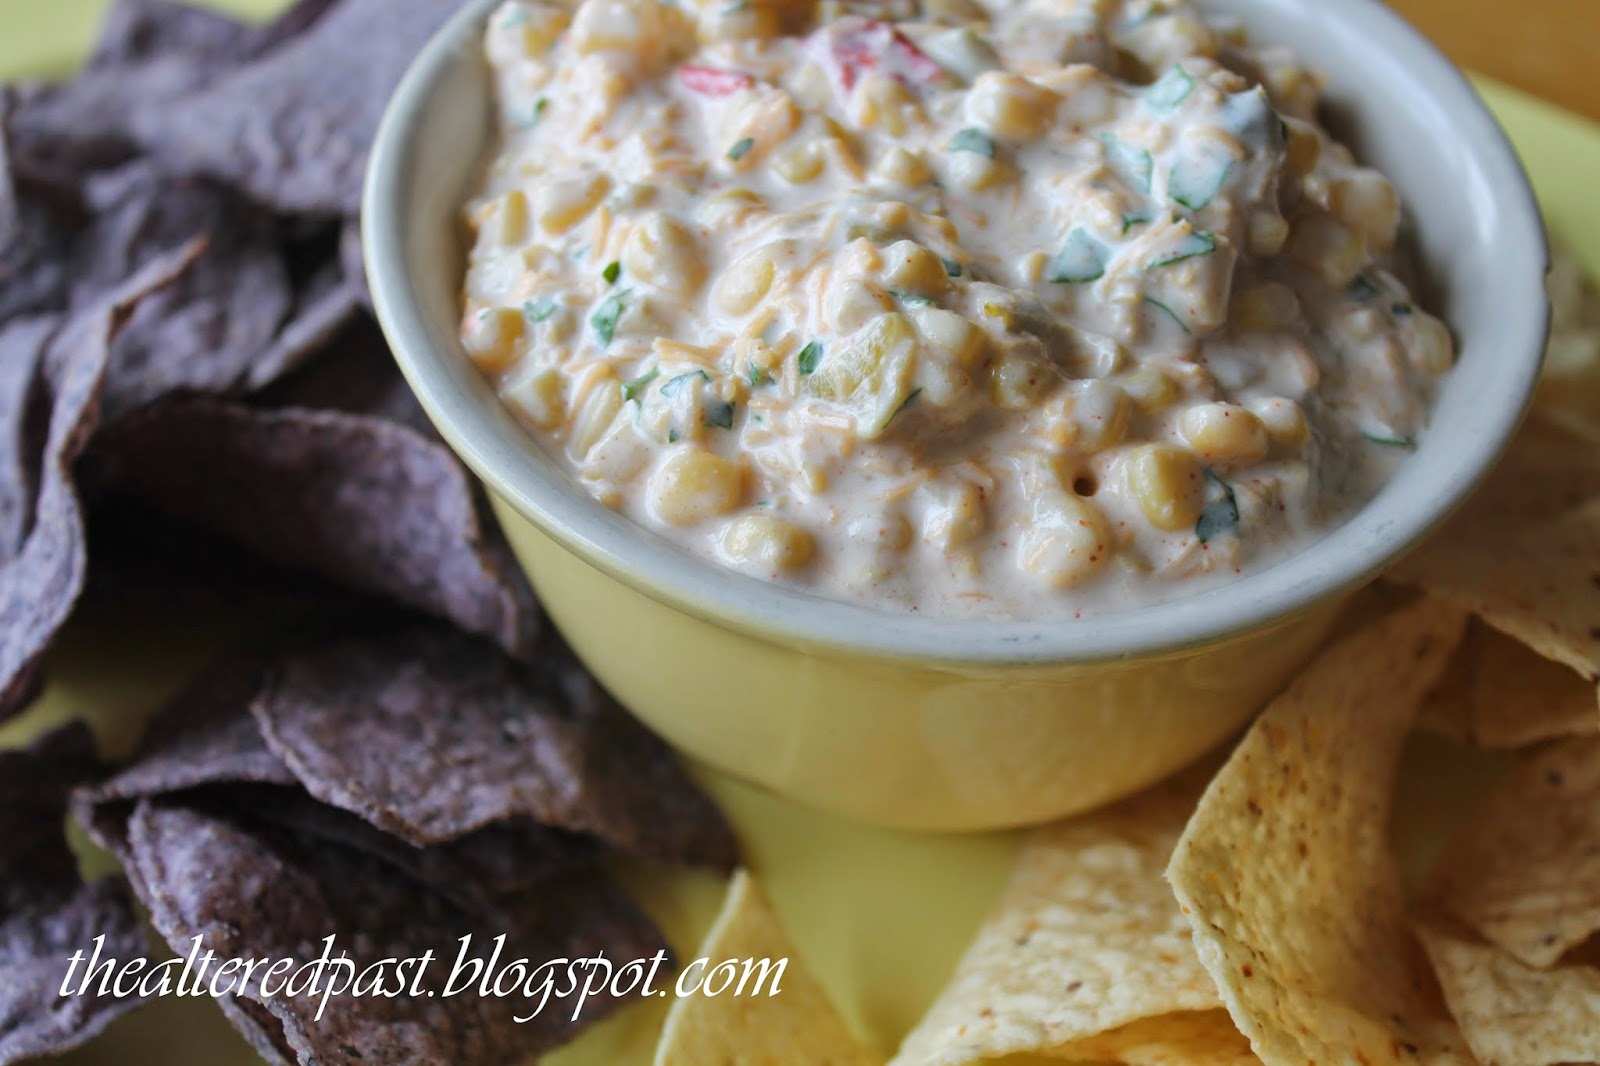 fiesta corn salsa, super bowl recipes, the altered past blog